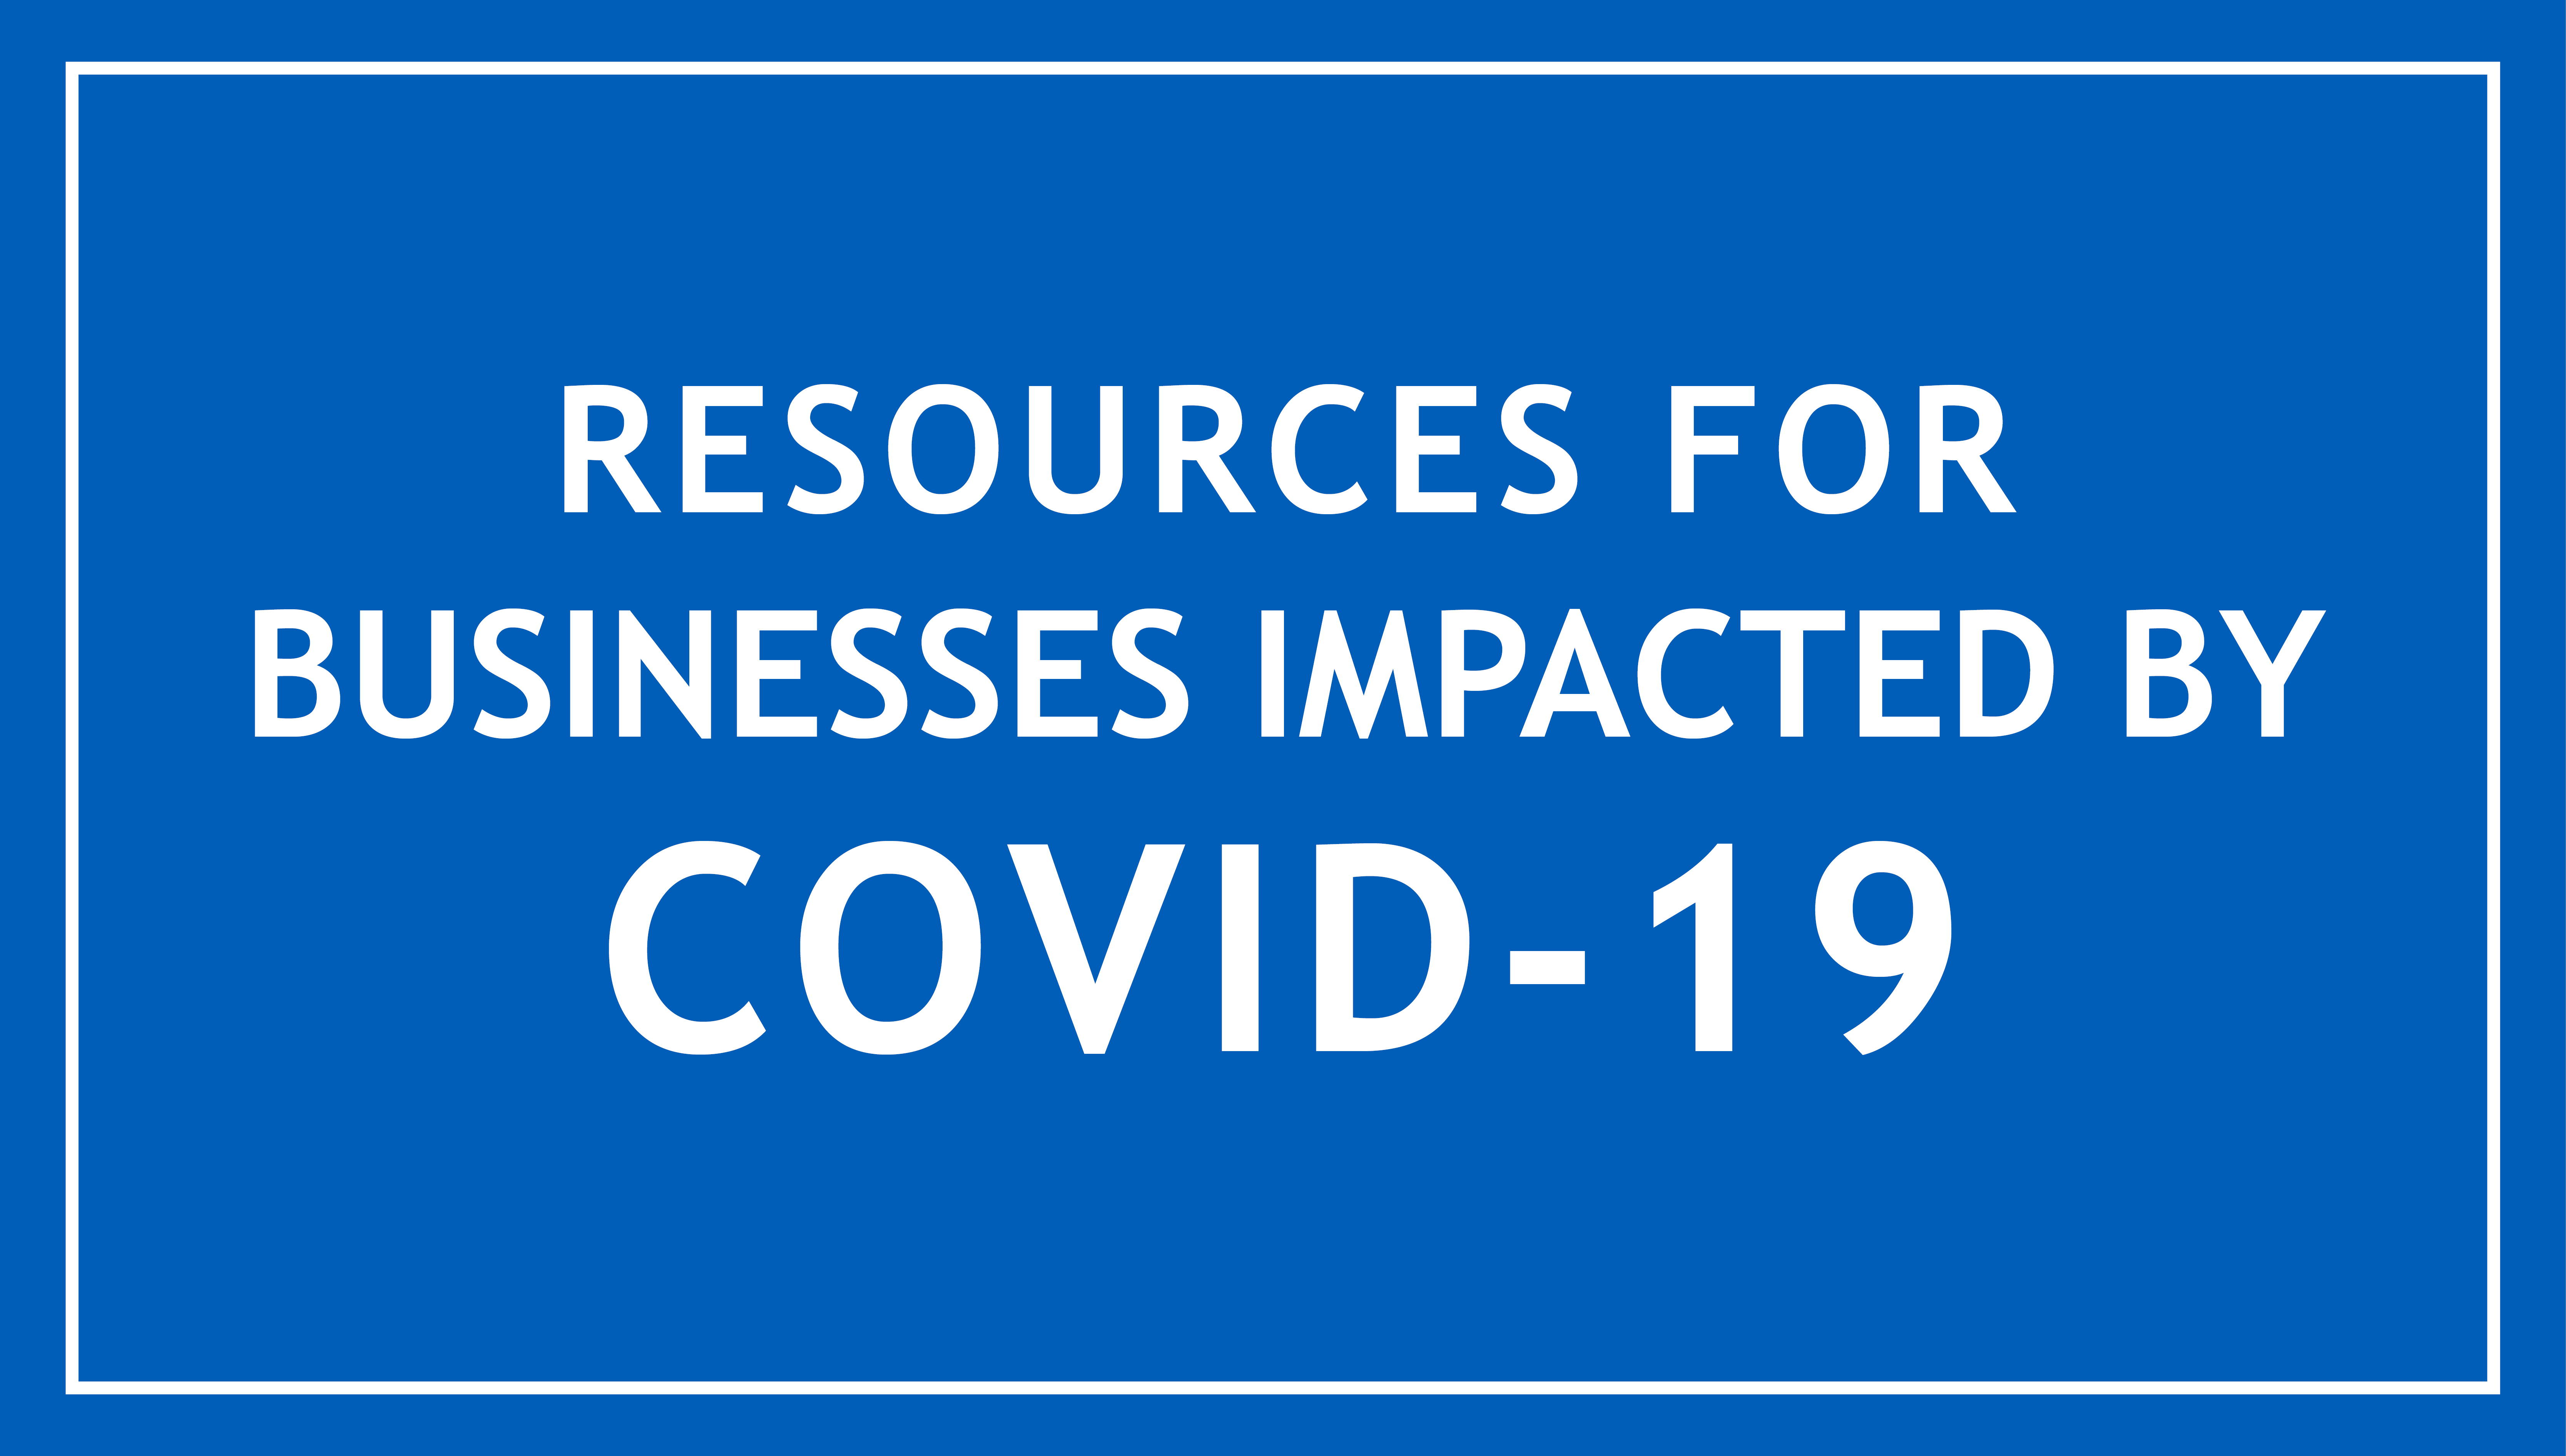 COVID-19 Business Resources graphic